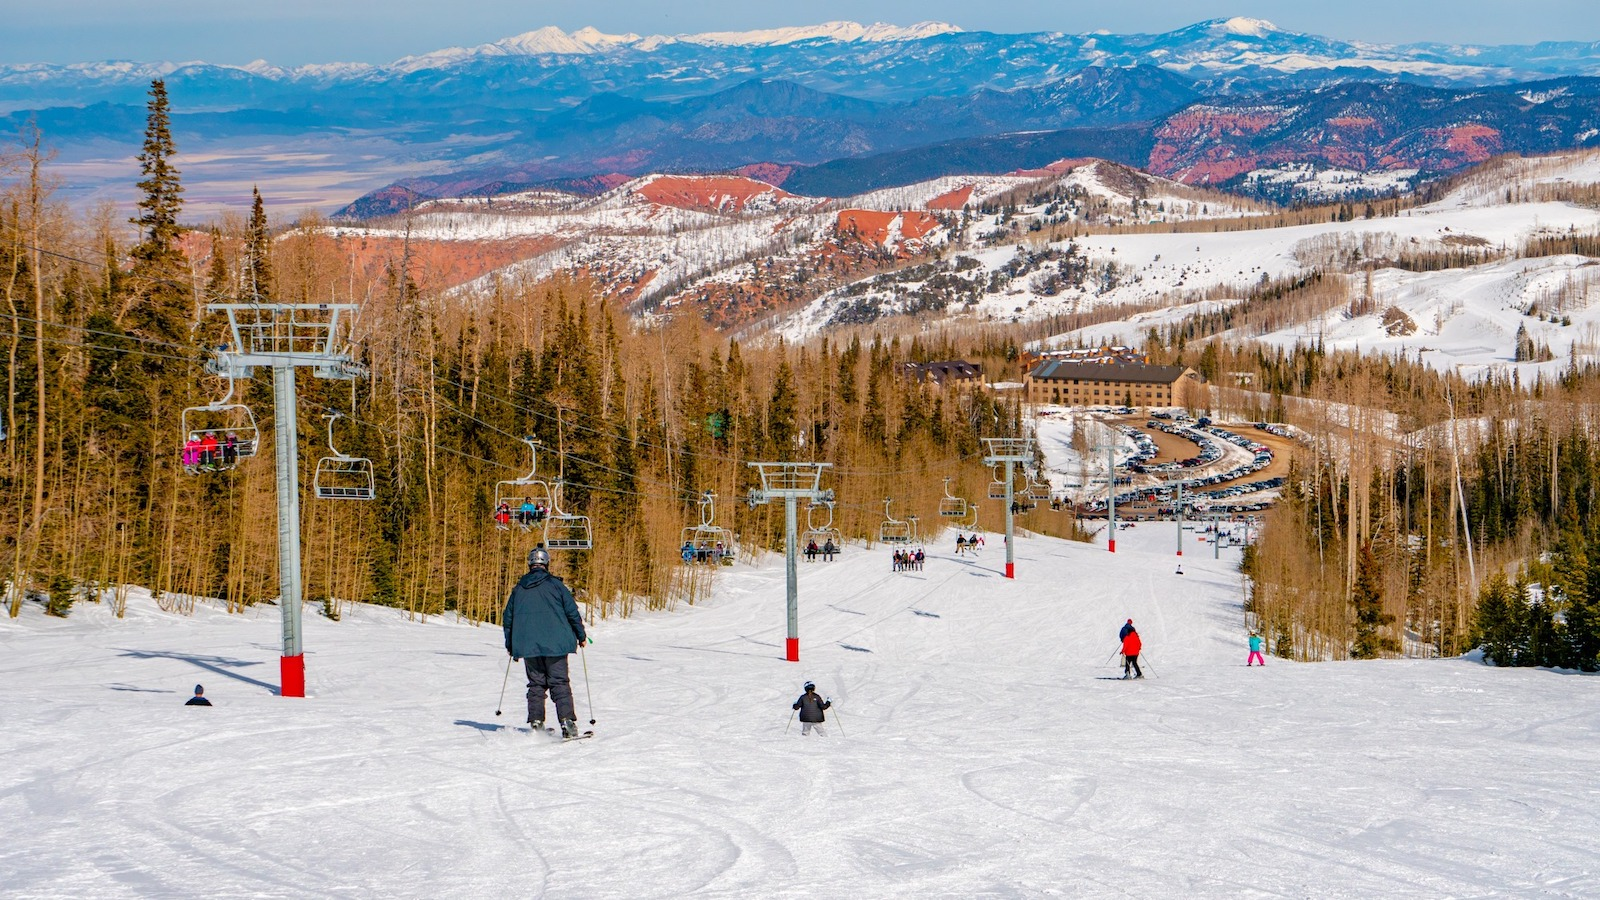 Image of skiers going down the slopes near the chairlift at Brian Head Resort in Utah